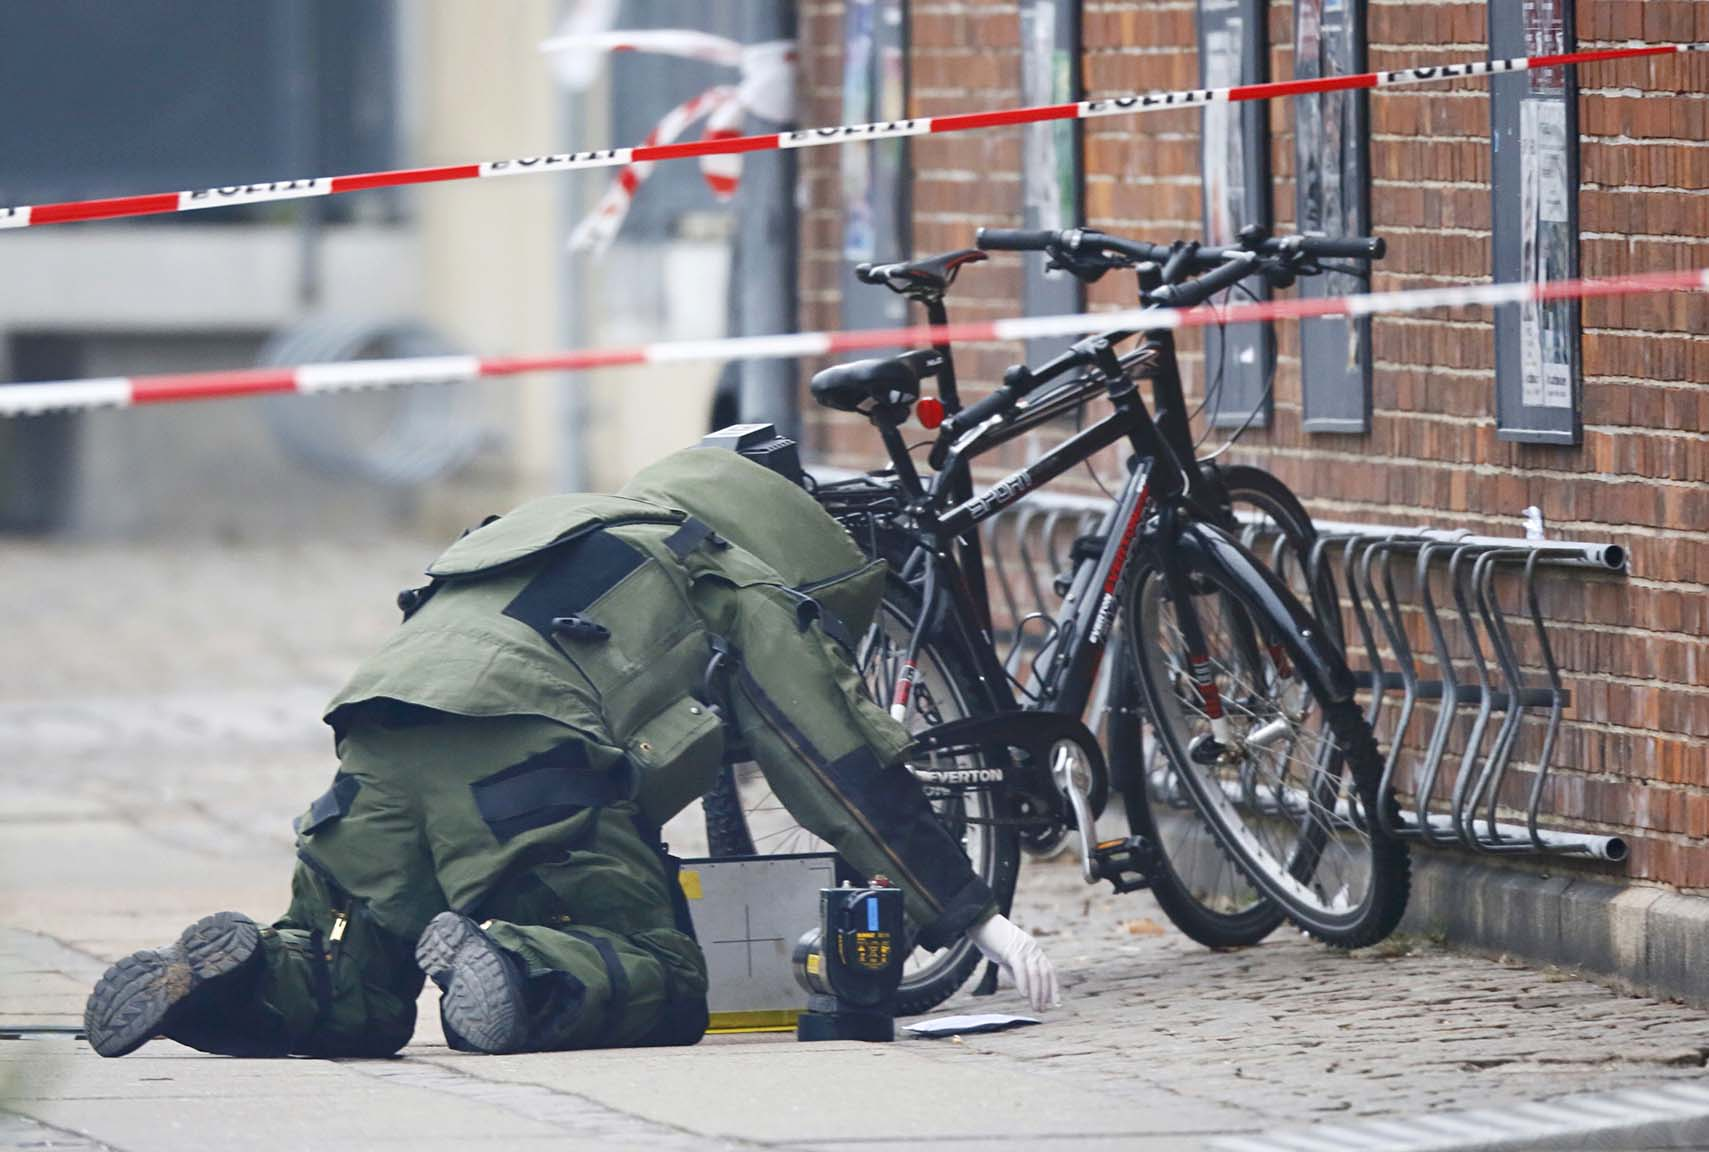 A bomb disposal expert investigates an unattended package at a cafe in Copenhagen